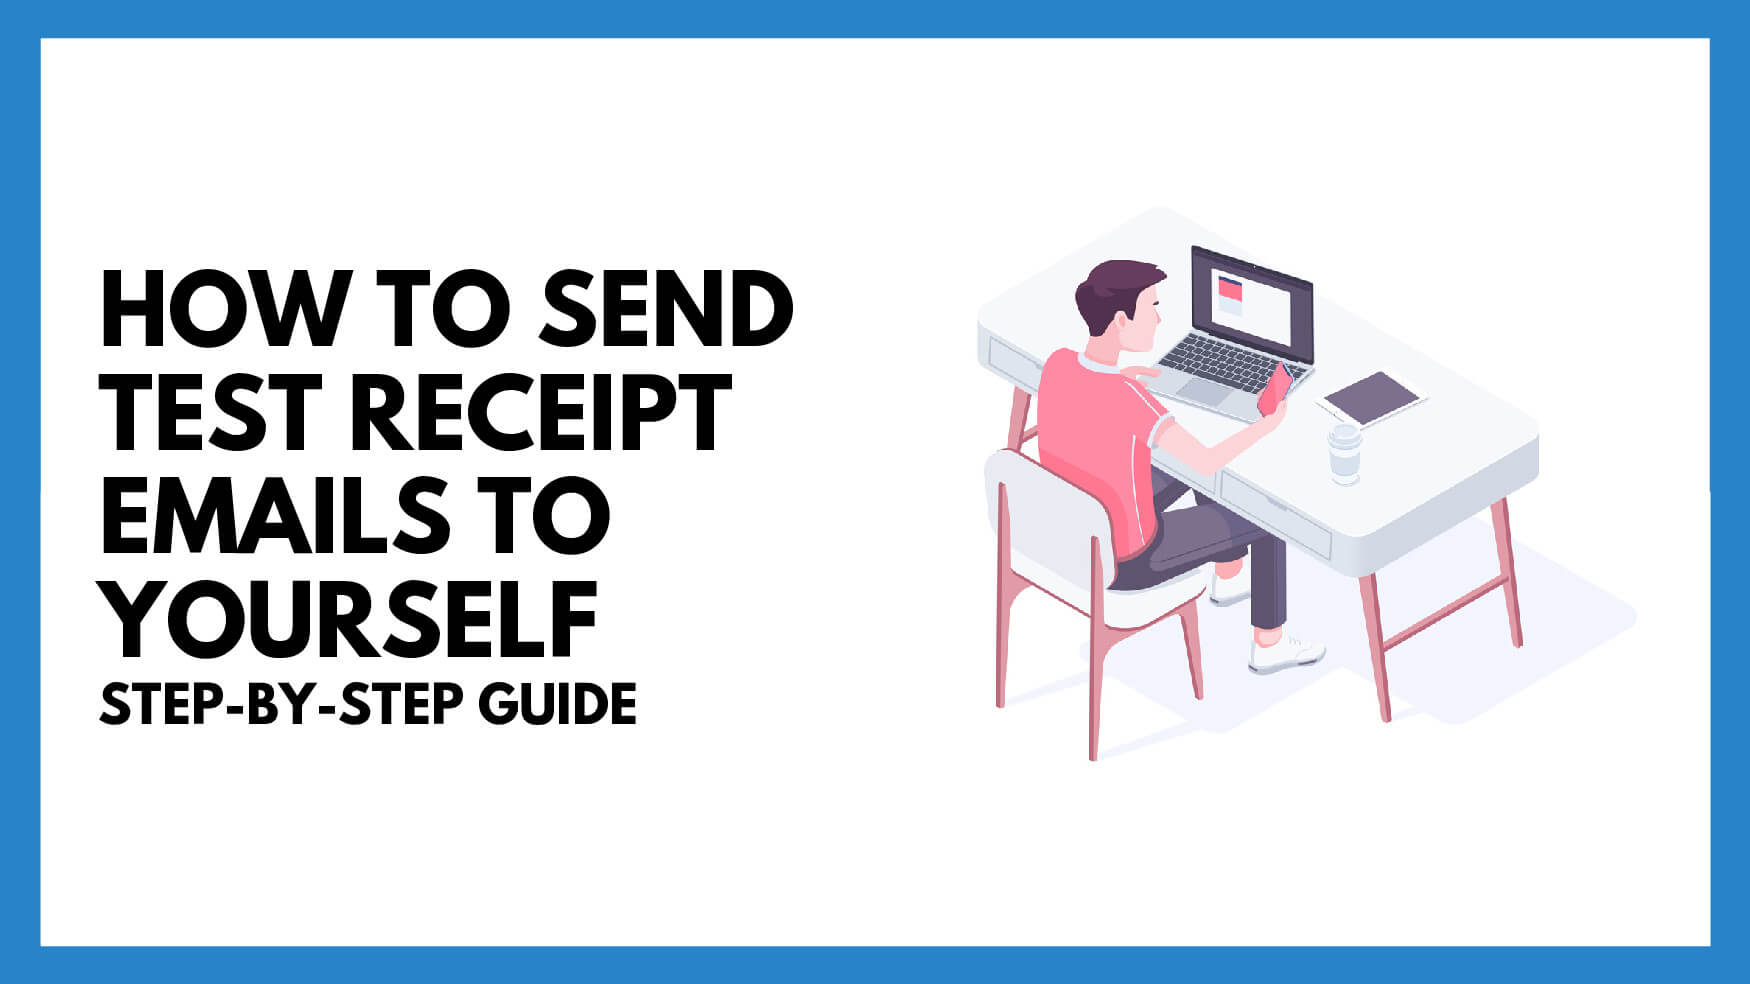 How To Send Test Receipt Emails: Step-by-step Guide